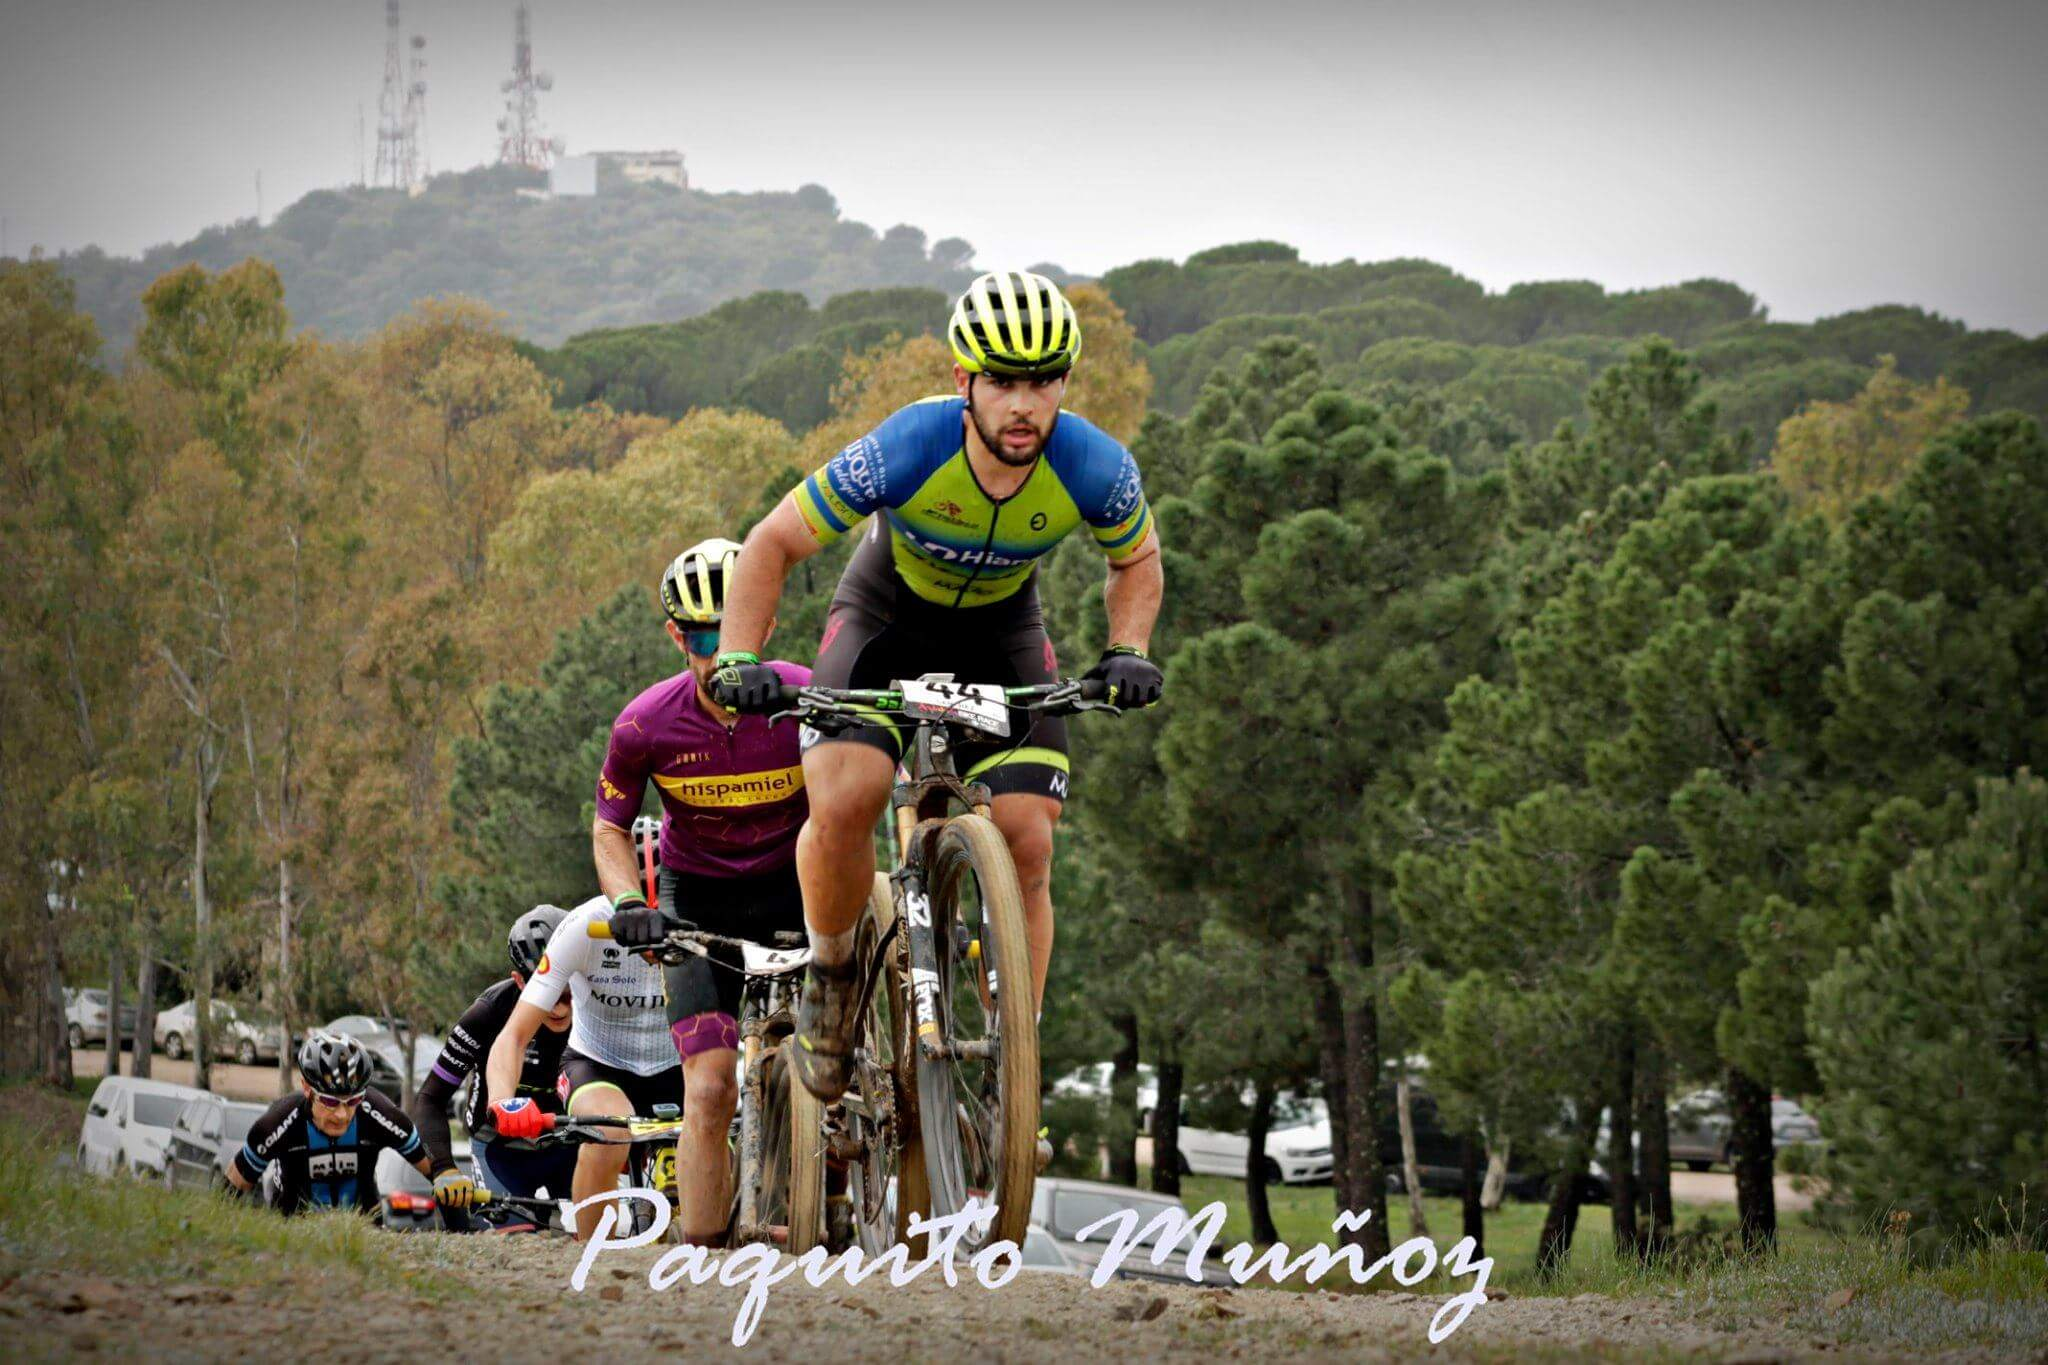 Andalucía MTB Race Results: Spain Takes 2nd Place